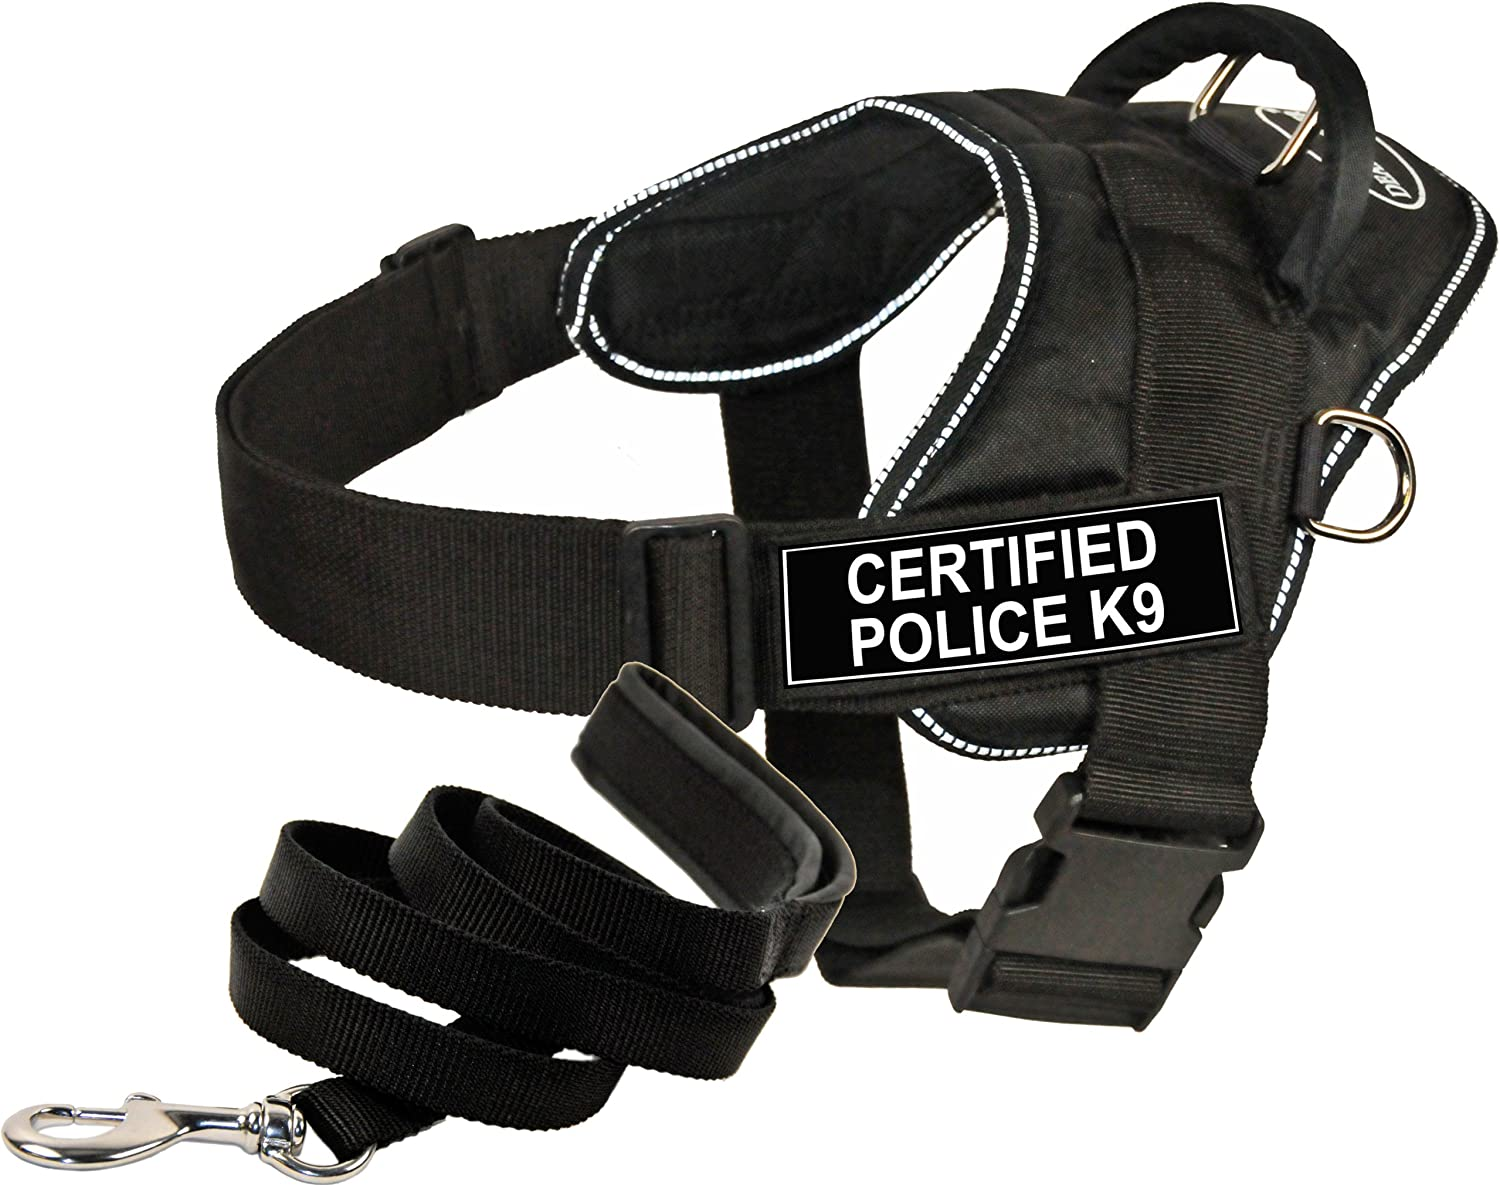 Dean and Tyler Bundle  One DT Fun Works  Harness, Certified Police K9, Reflective, XSmall + One Padded Puppy  Leash, 6 FT Stainless Snap  Black